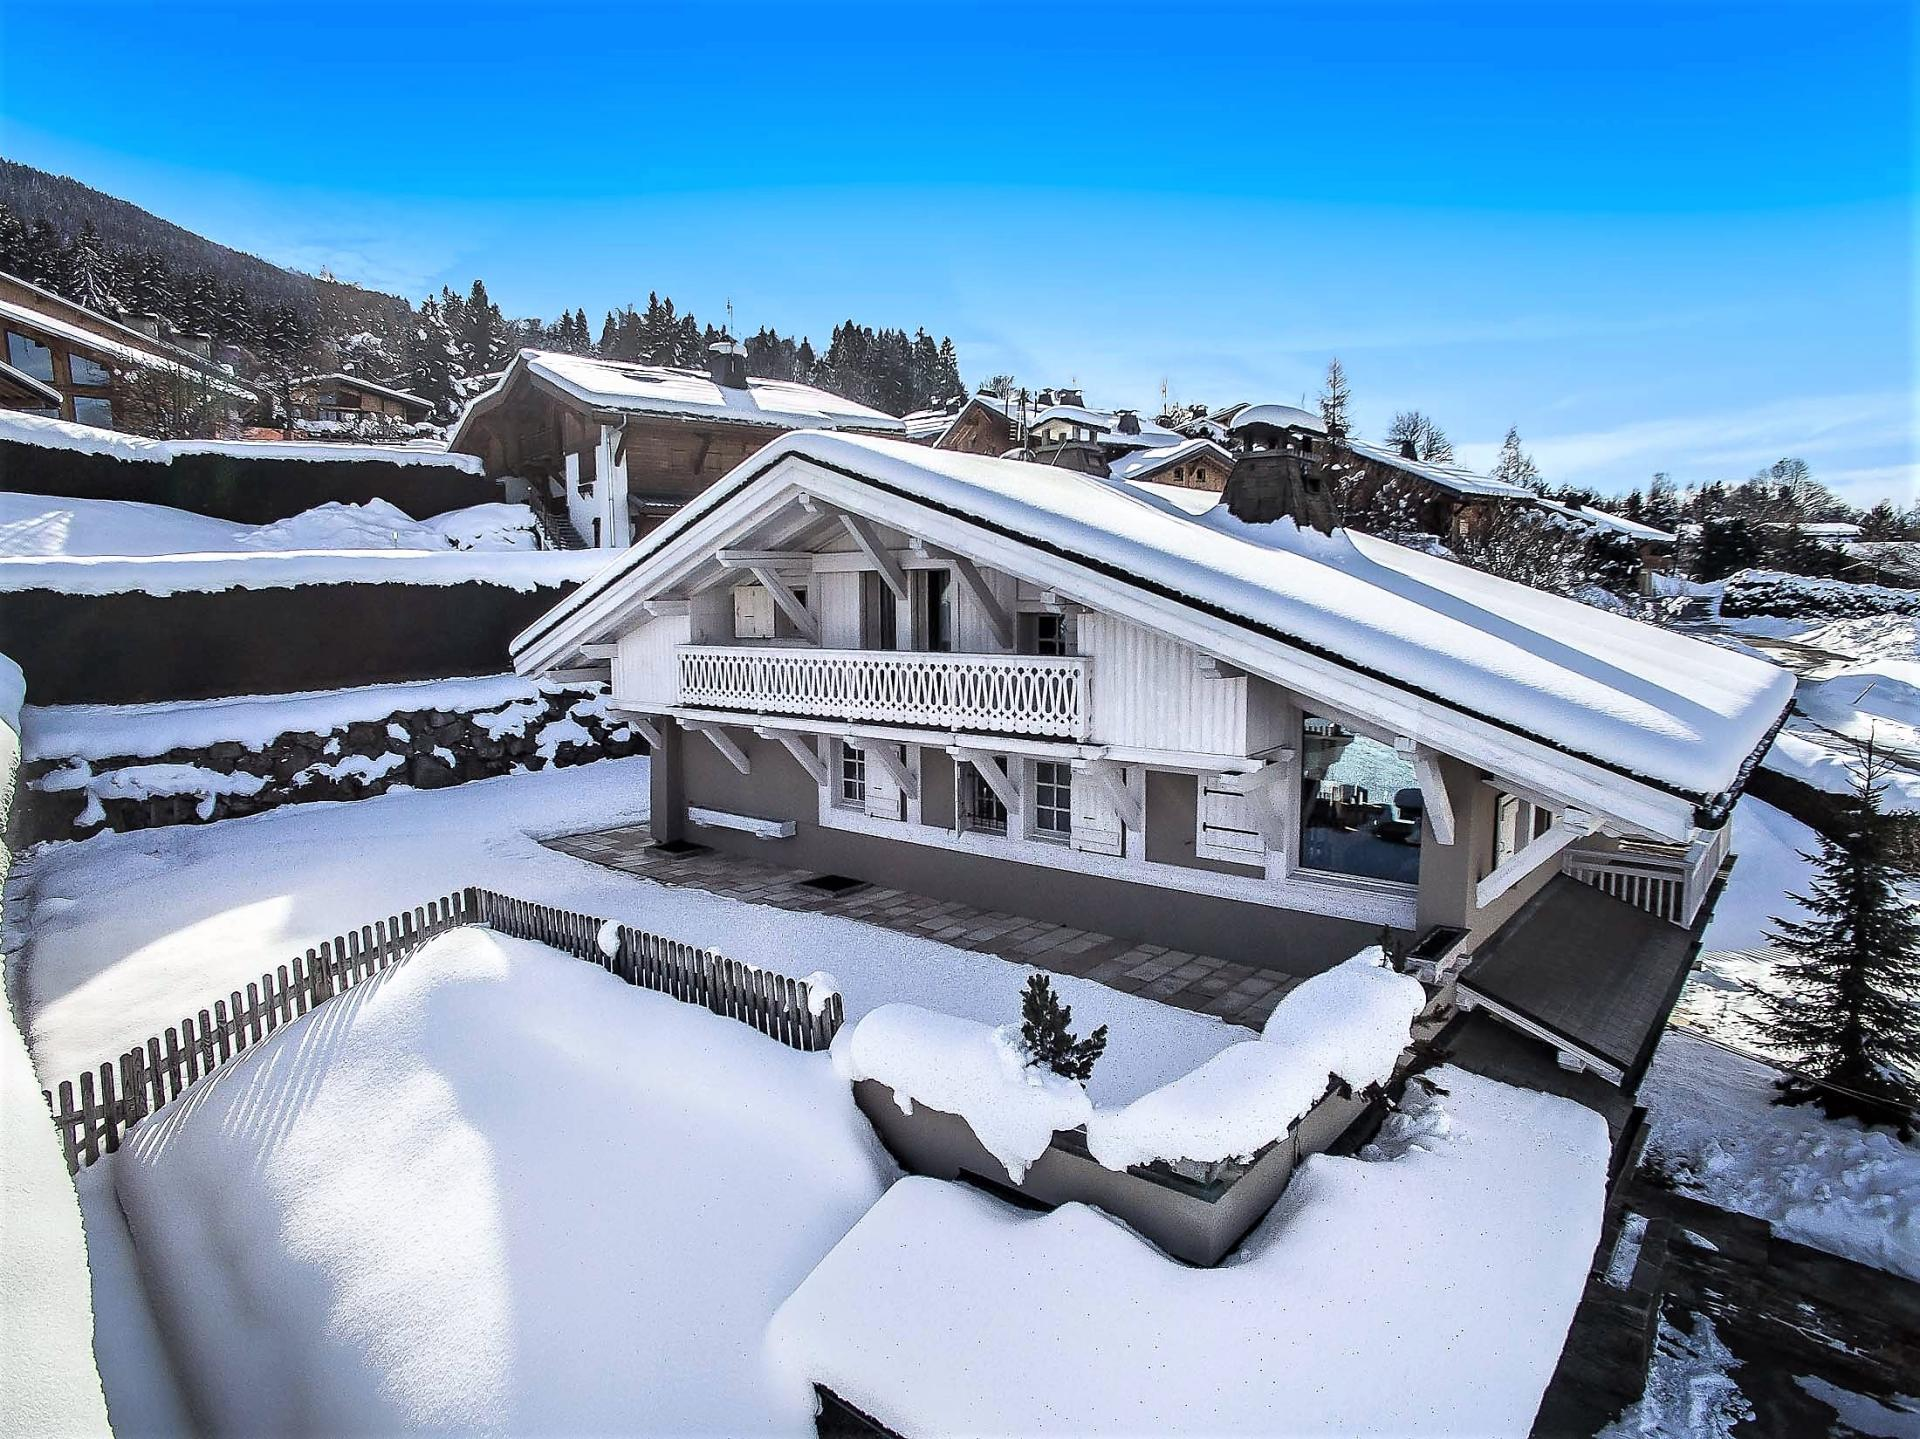 A BEAUTIFUL CHALET TO RENT FOR YOUR SKI HOLIDAY IN THE FRENCH ALPS